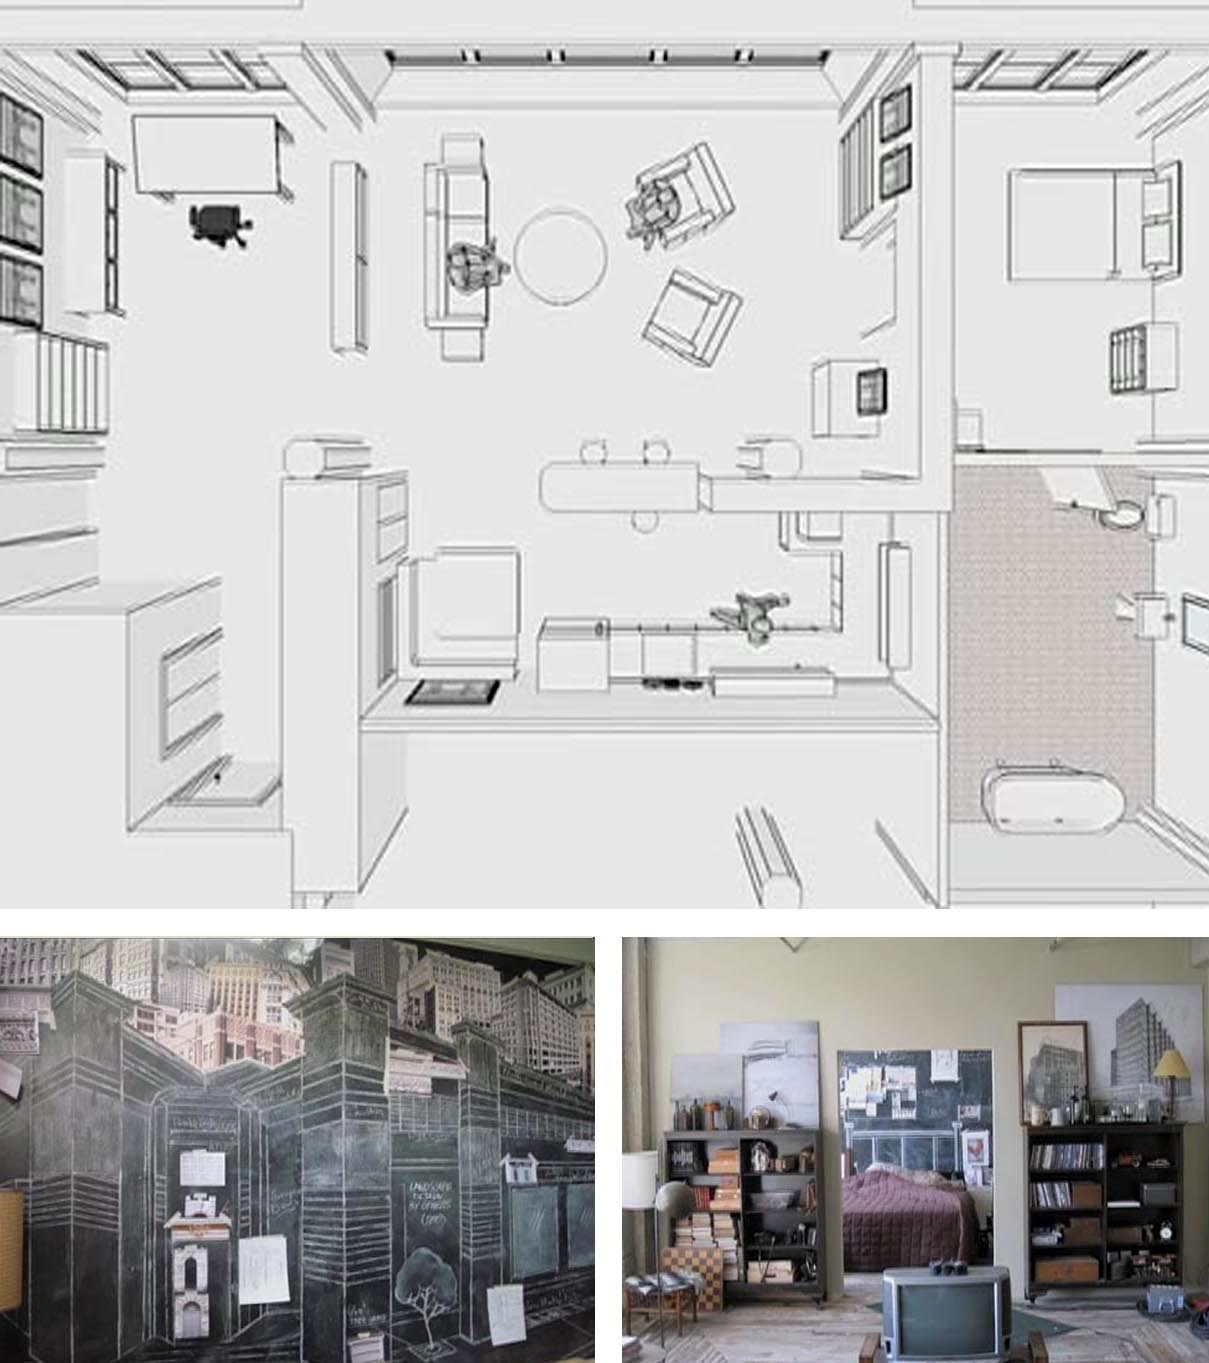 Architecture Drawing 500 Days Of Summer